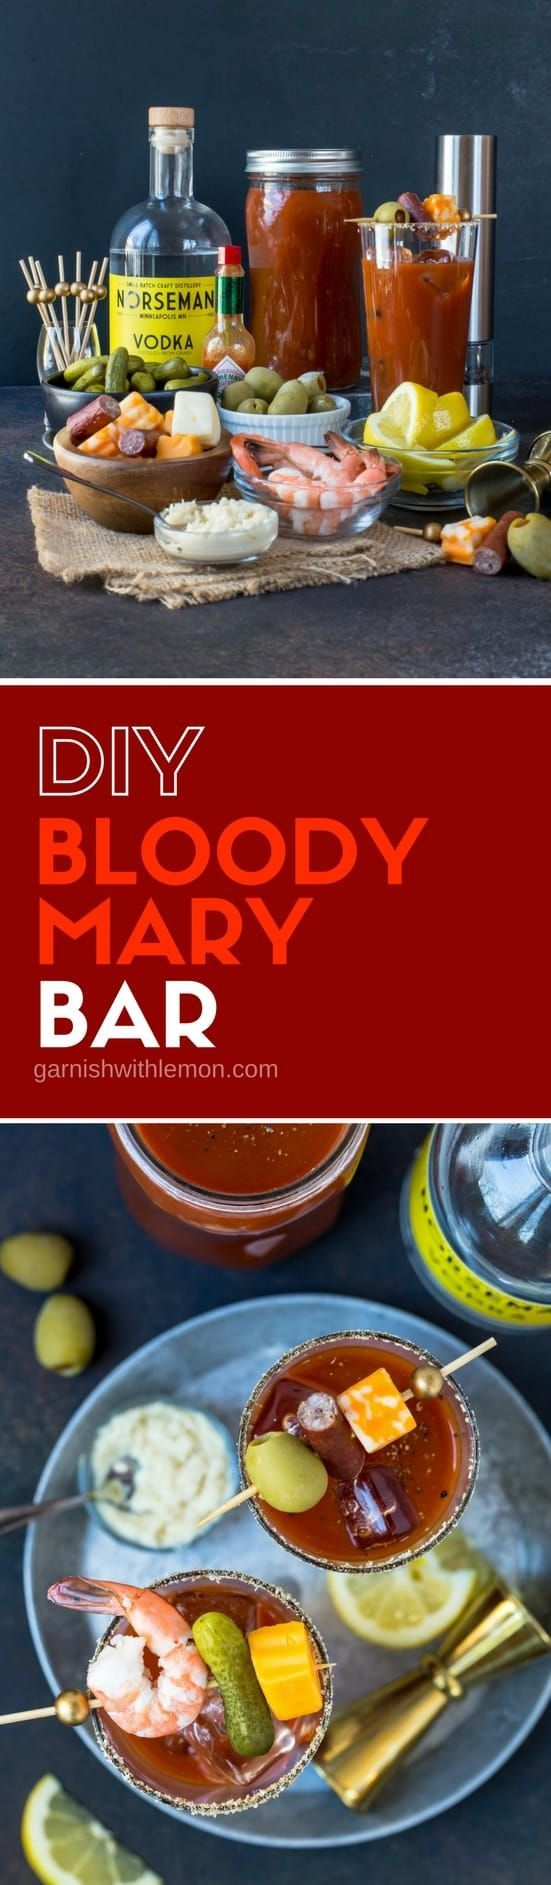 Brunch isn\'t brunch without a Bloody Mary. Set up an easy DIY Bloody Mary Bar and let your guests serve themselves! #bloodymary #bloodymarybar #vodka #brunch